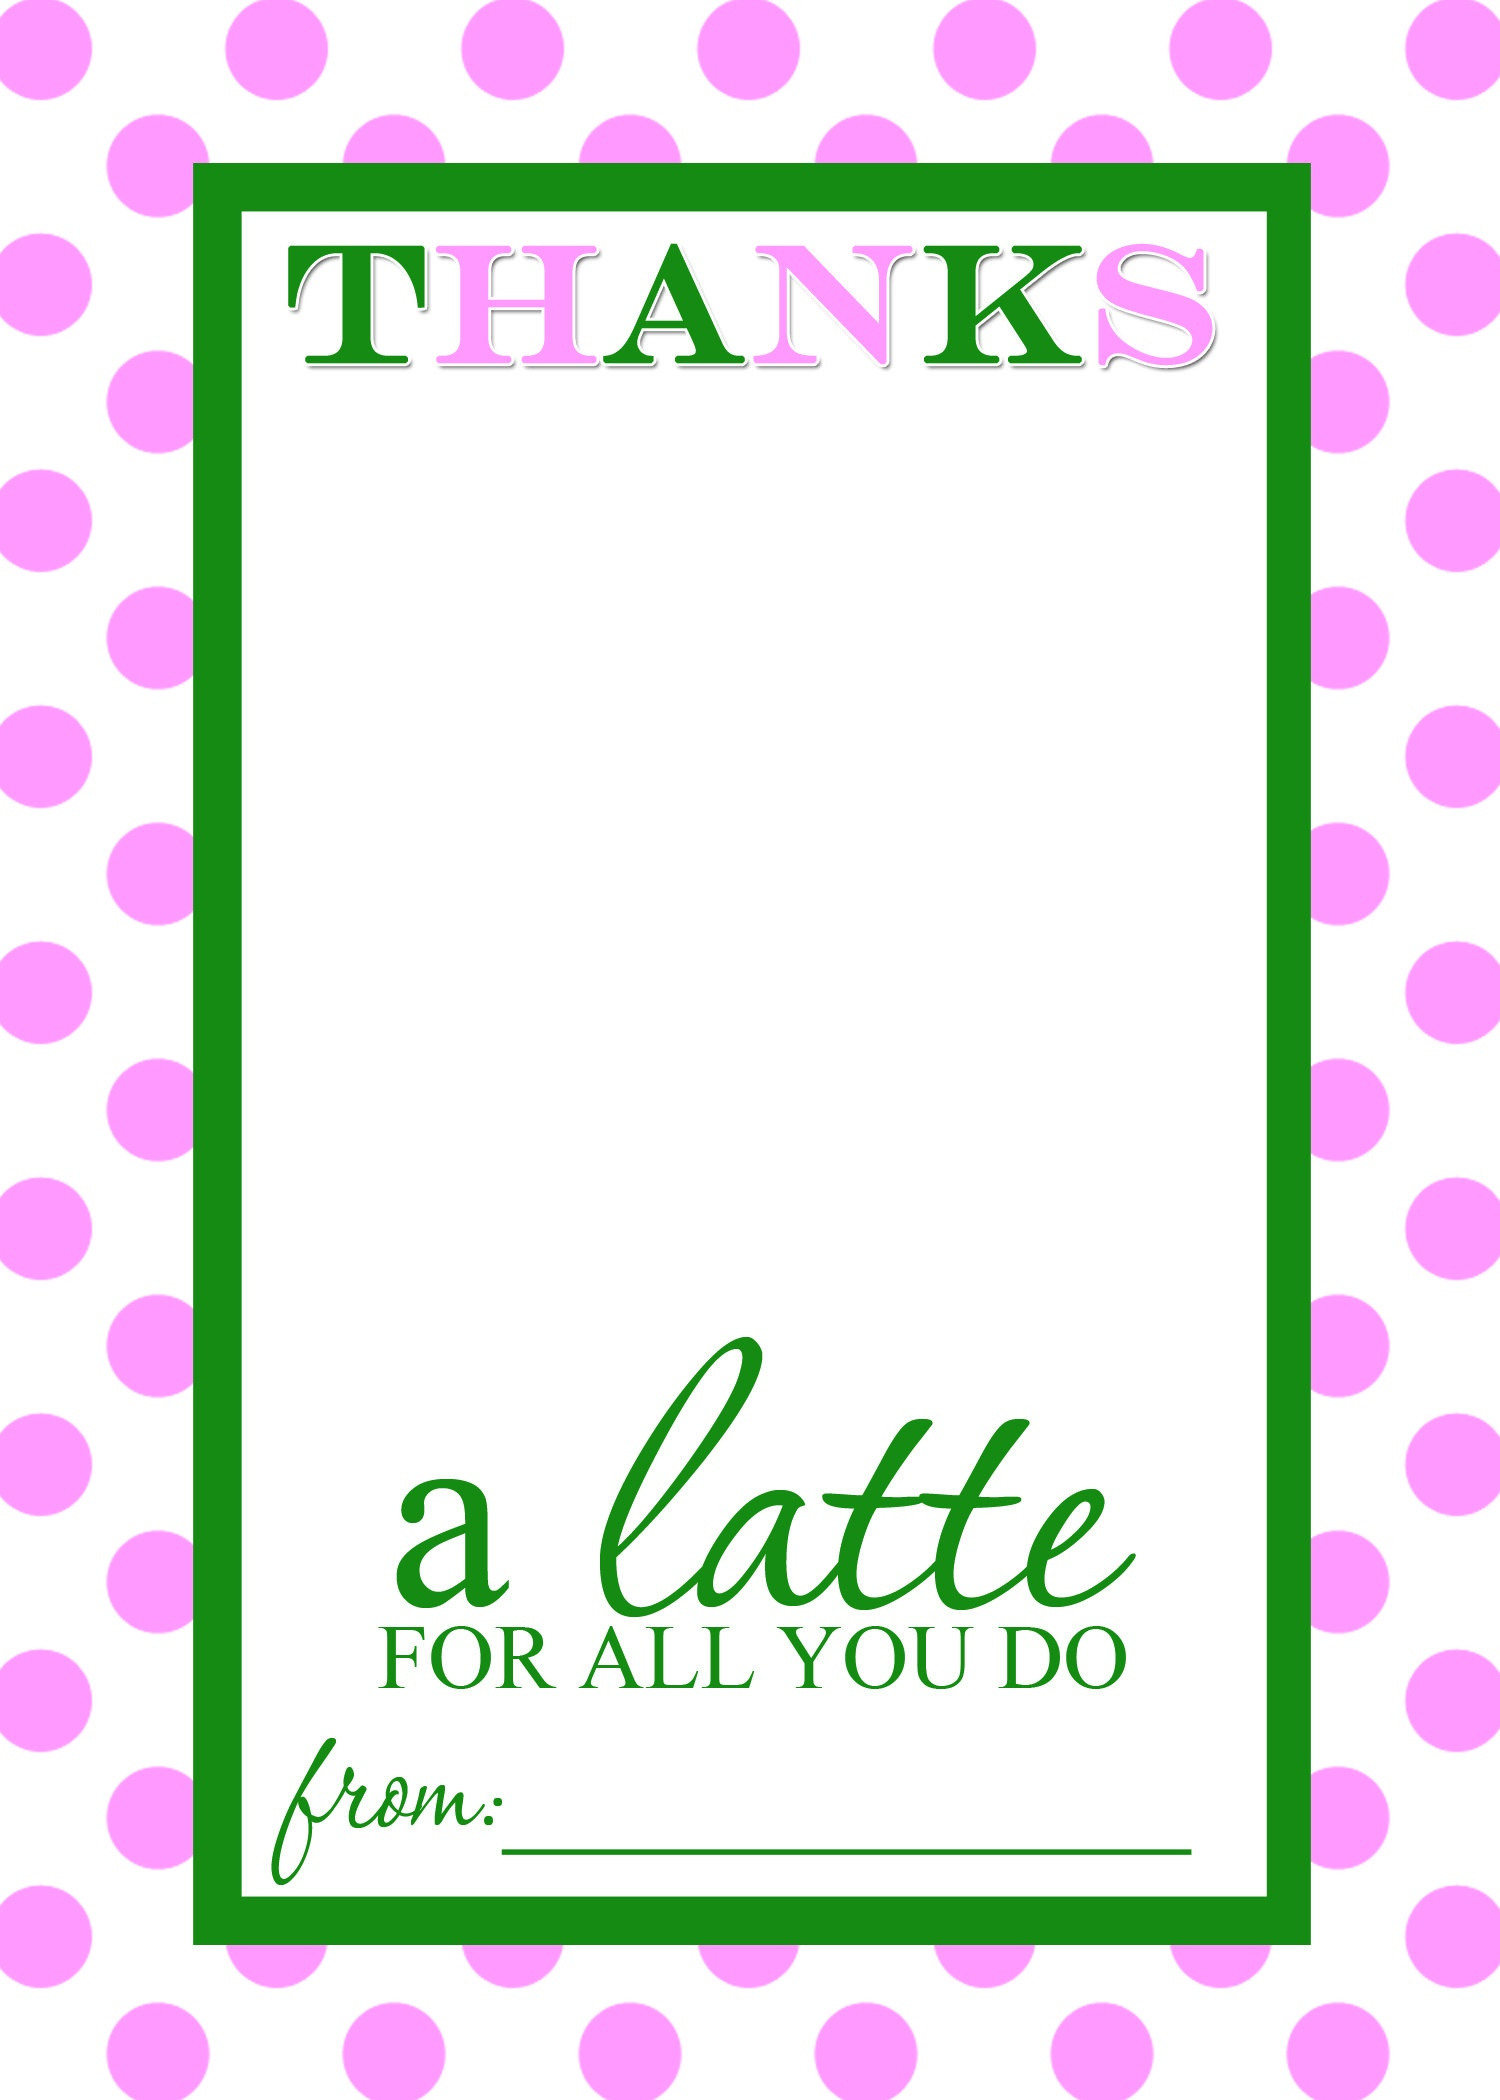 Thanks A Latte Free Printable Gift Card Holder Teacher Gift | Diy - Thanks A Latte Free Printable